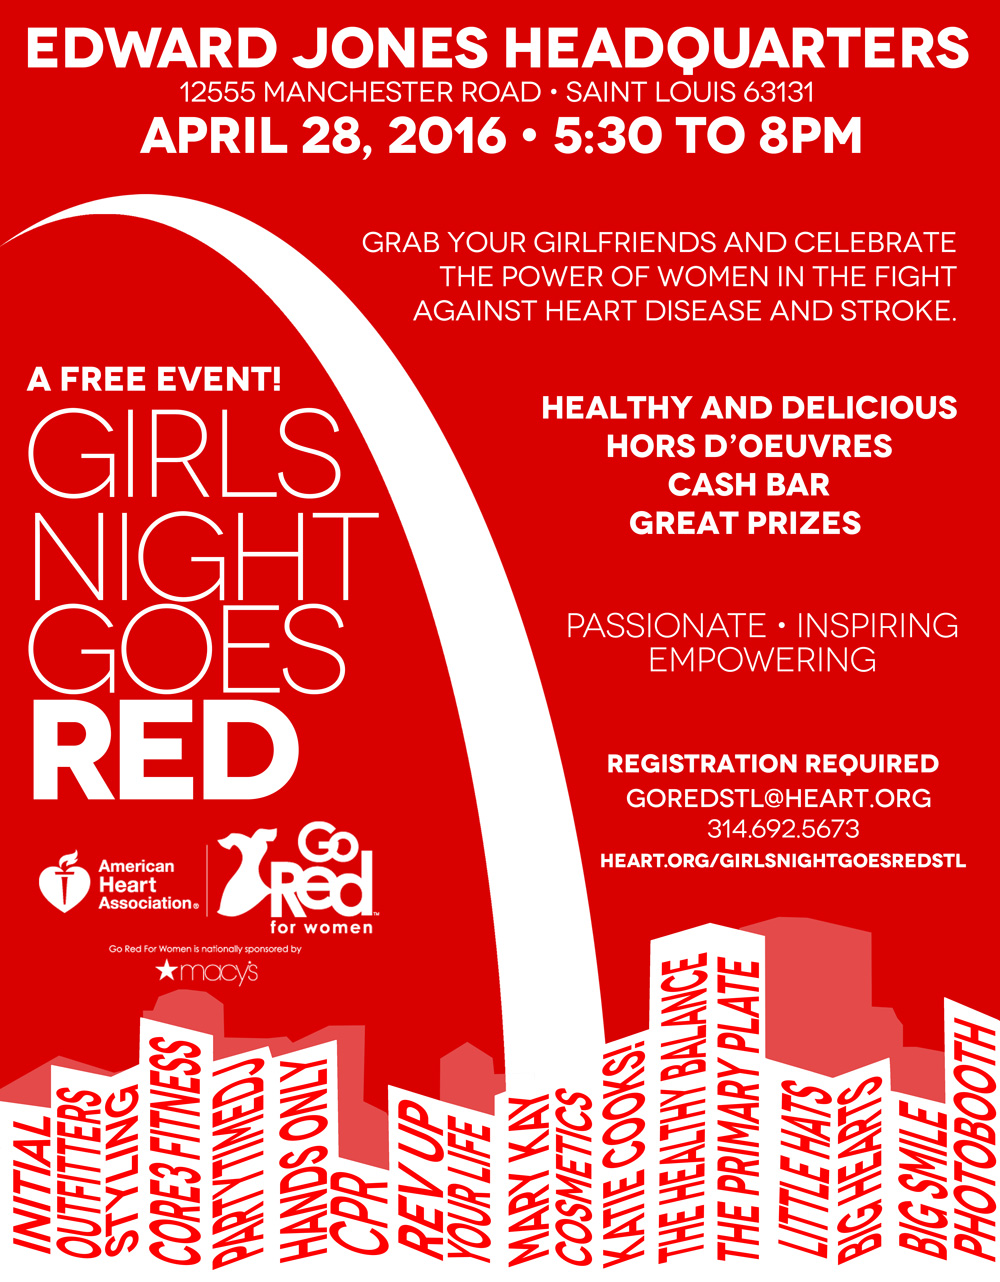 Girls Night Goes Red in St. Louis